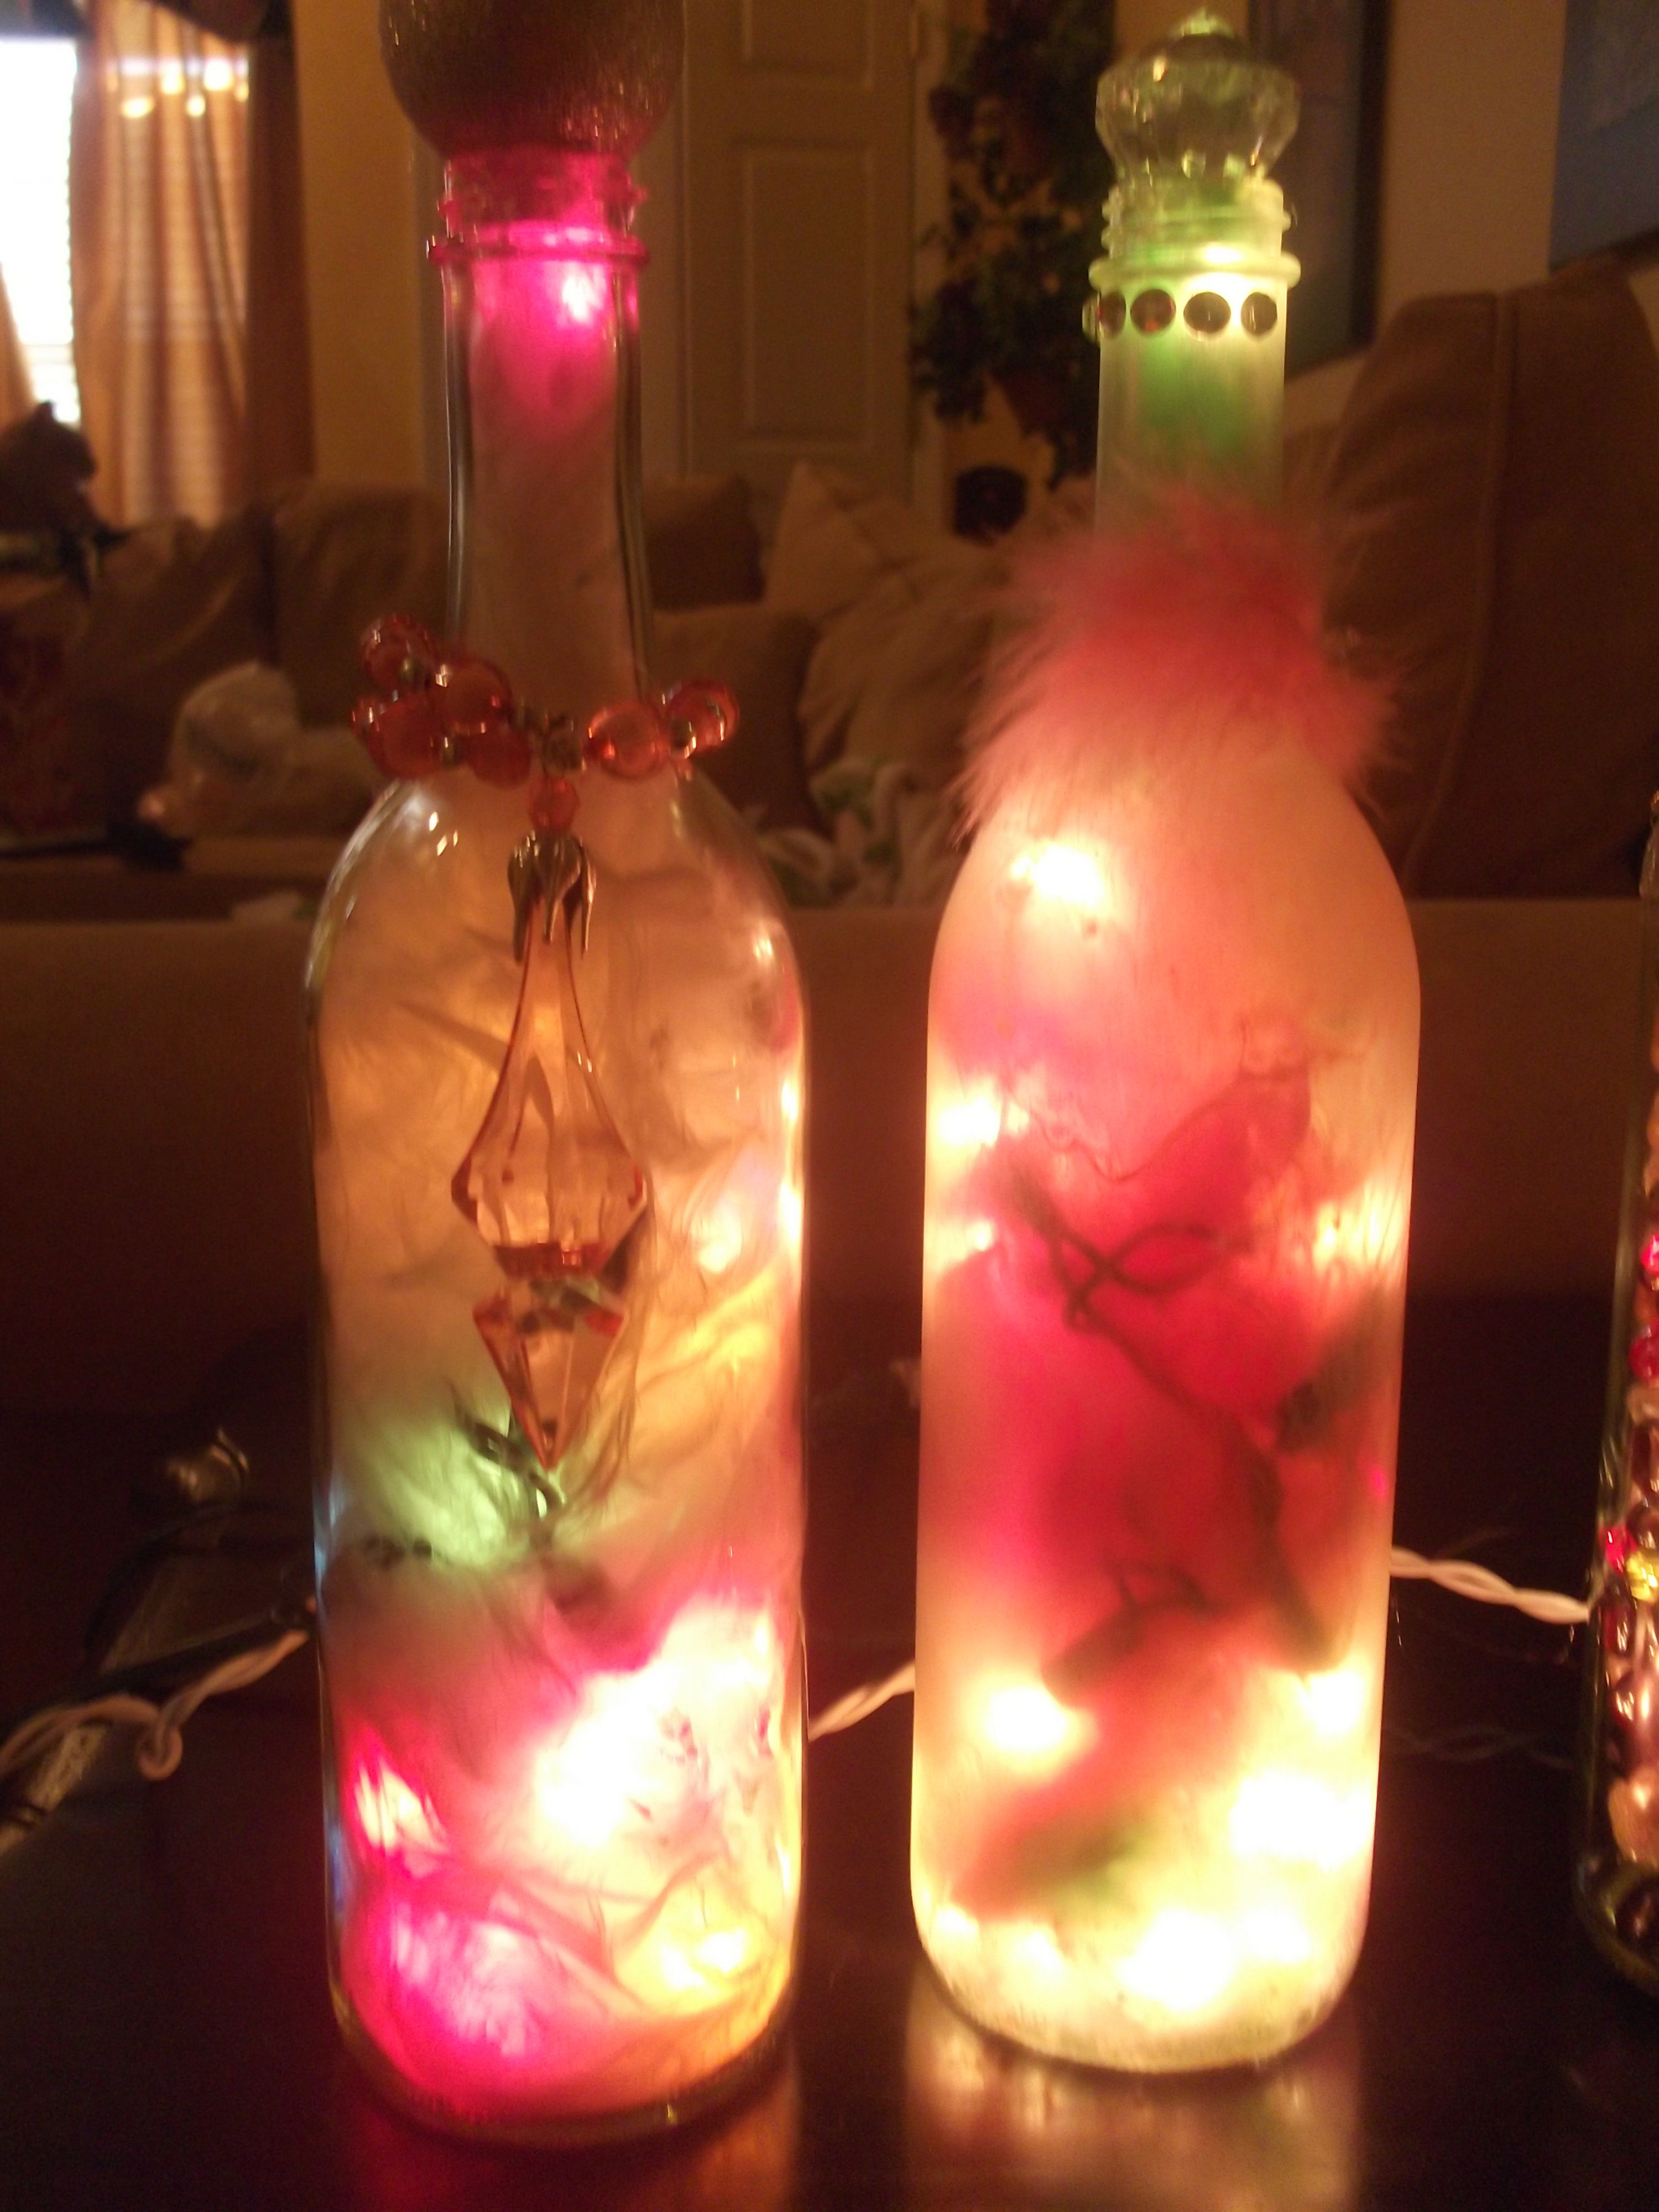 Decorative Wine Bottles With Lights And Feathers Inside Lighted Wine Bottles Wine Bottle Diy Wine Bottle Decor